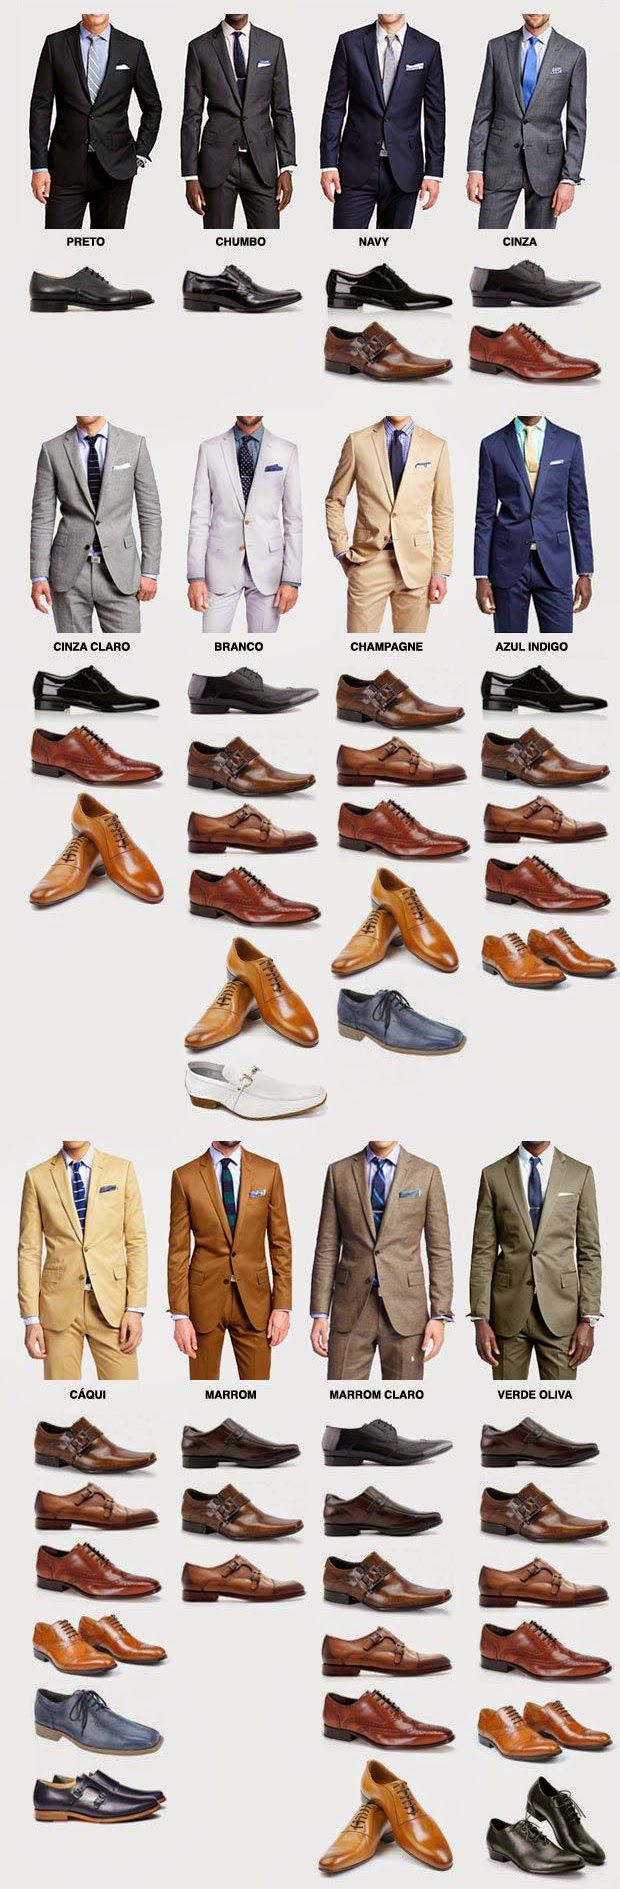 ur-complete-color-guide-2-suit-n-shoe-combinations-jpg.93377 (620×1889)